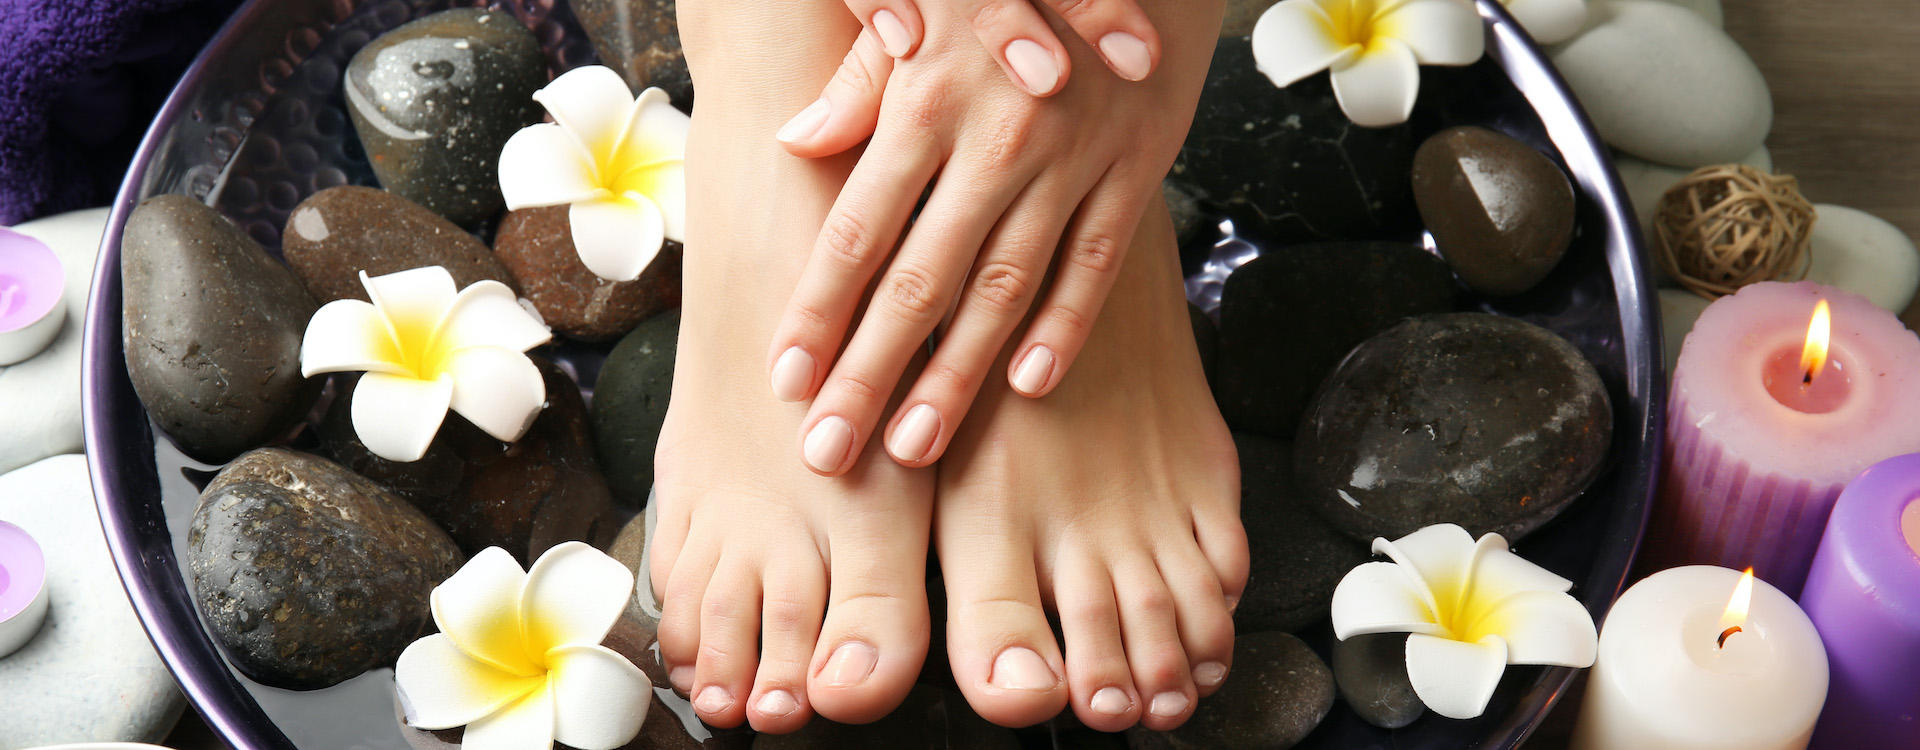 Deluxe Manicure and Pedicure